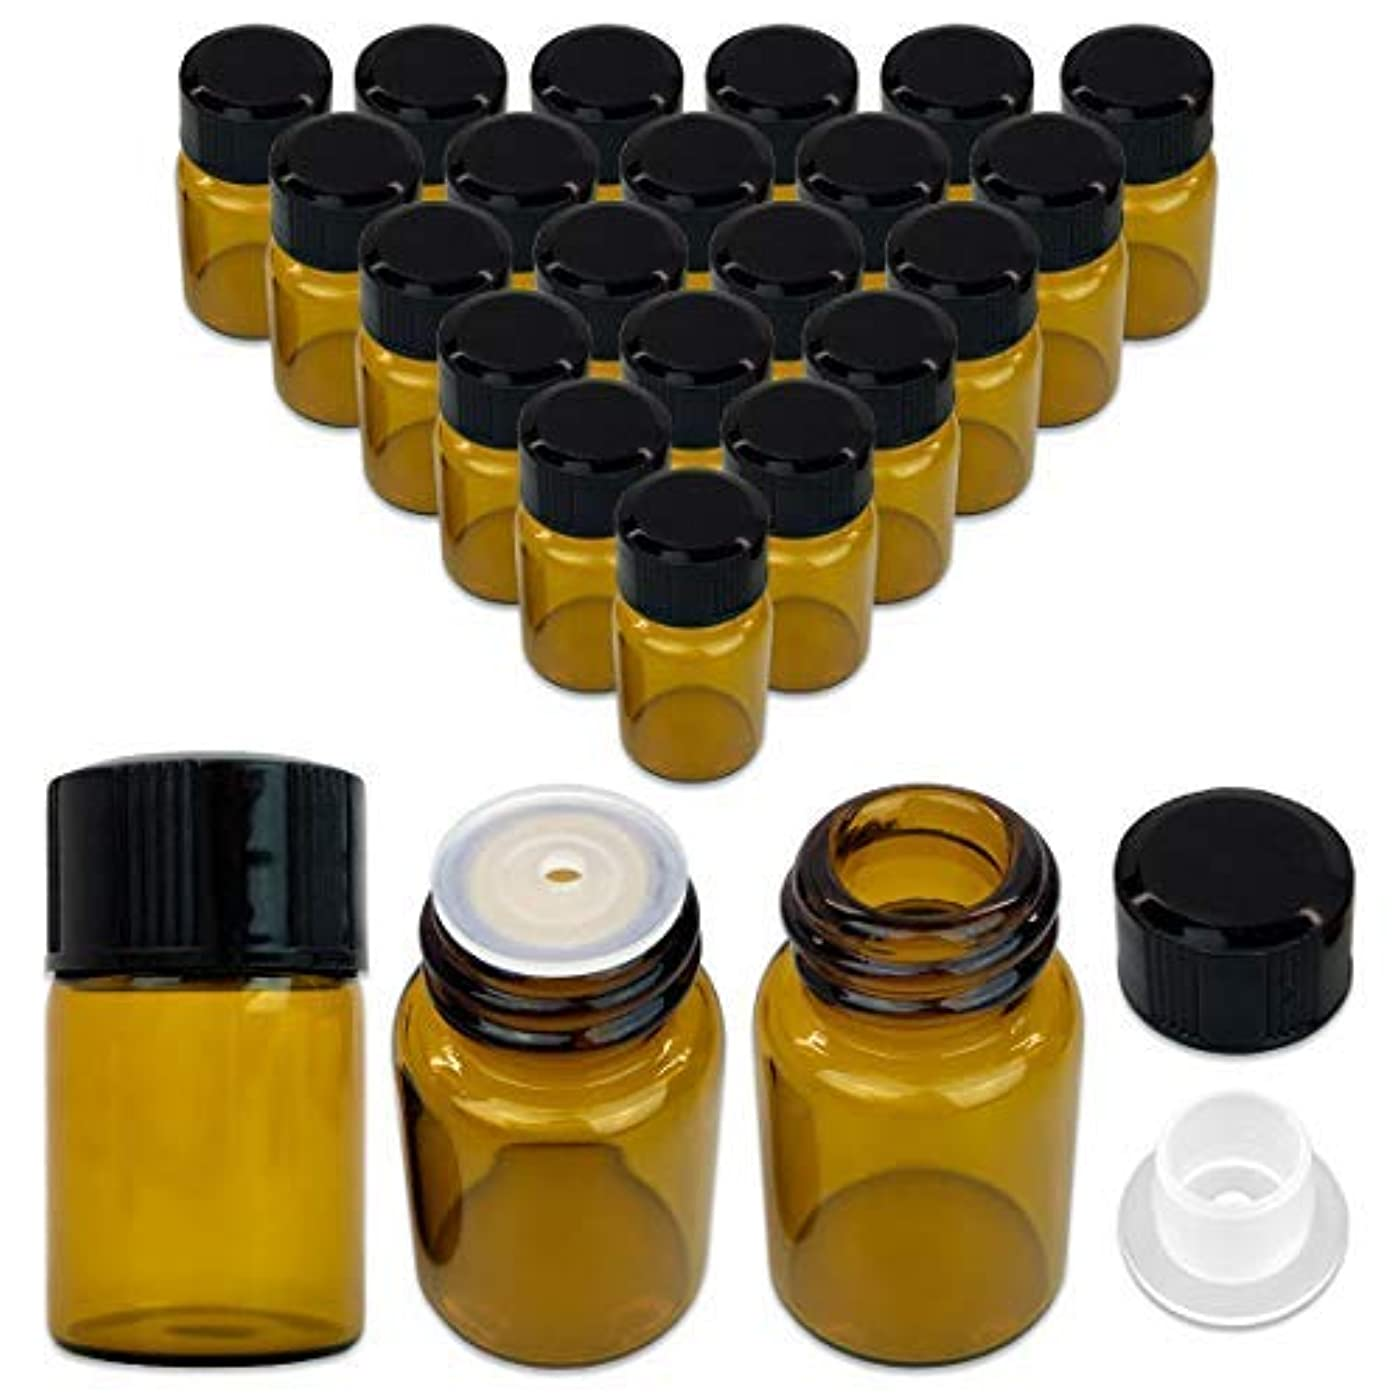 競合他社選手ようこそ全員24 Packs Beauticom 2ML Amber Glass Vial for Essential Oils, Aromatherapy, Fragrance, Serums, Spritzes, with Orifice...